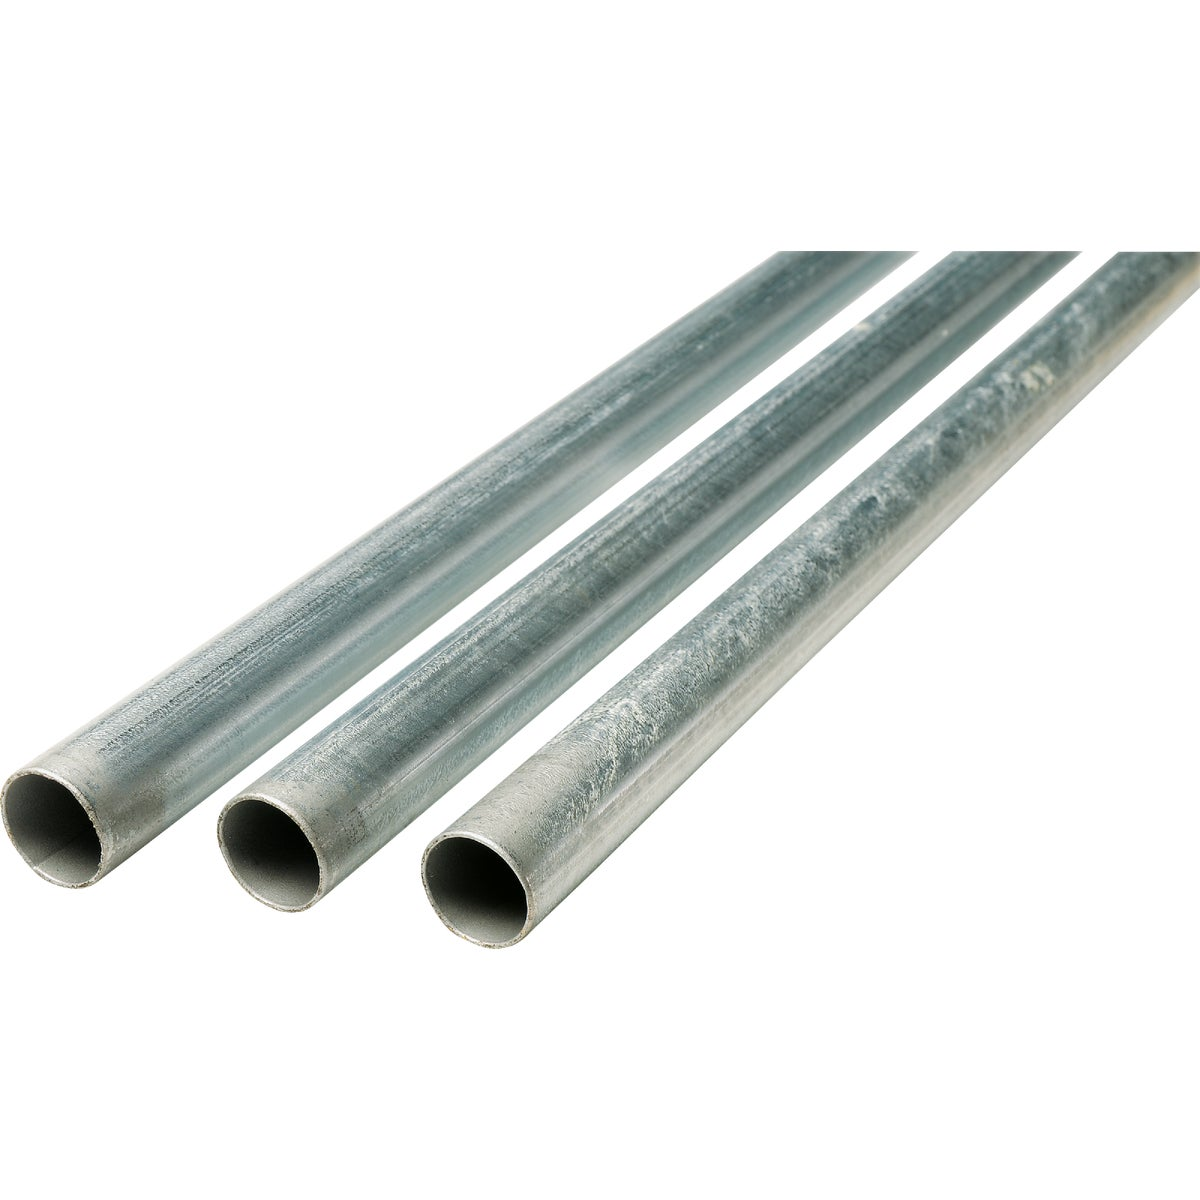 "1"" EMT CONDUIT - 101568 by Allied Tube  Atkore"